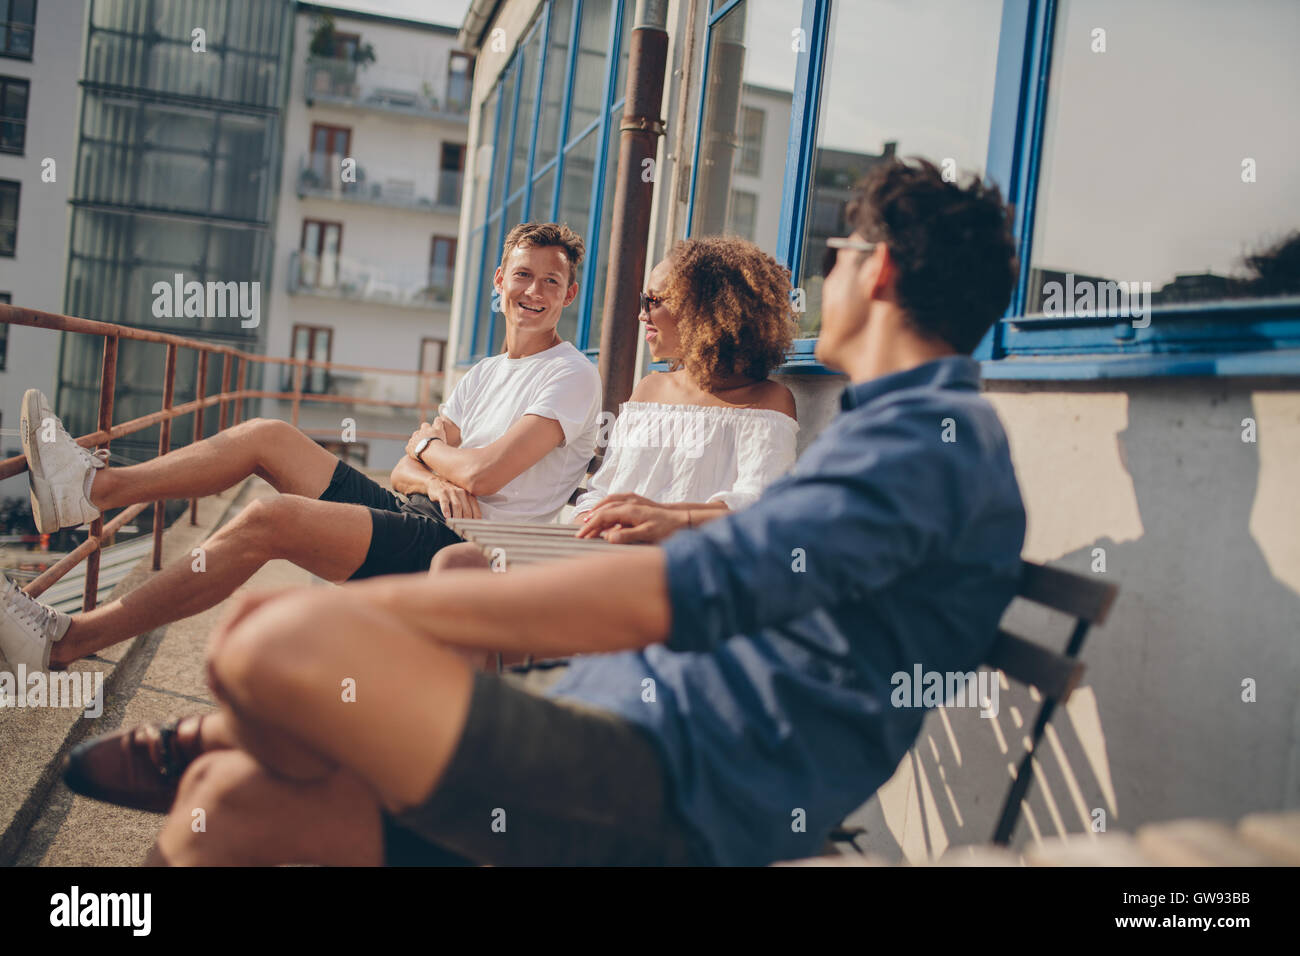 Three young friends at outdoor cafe. Multiracial group of young people relaxing outdoors at cafe table. - Stock Image